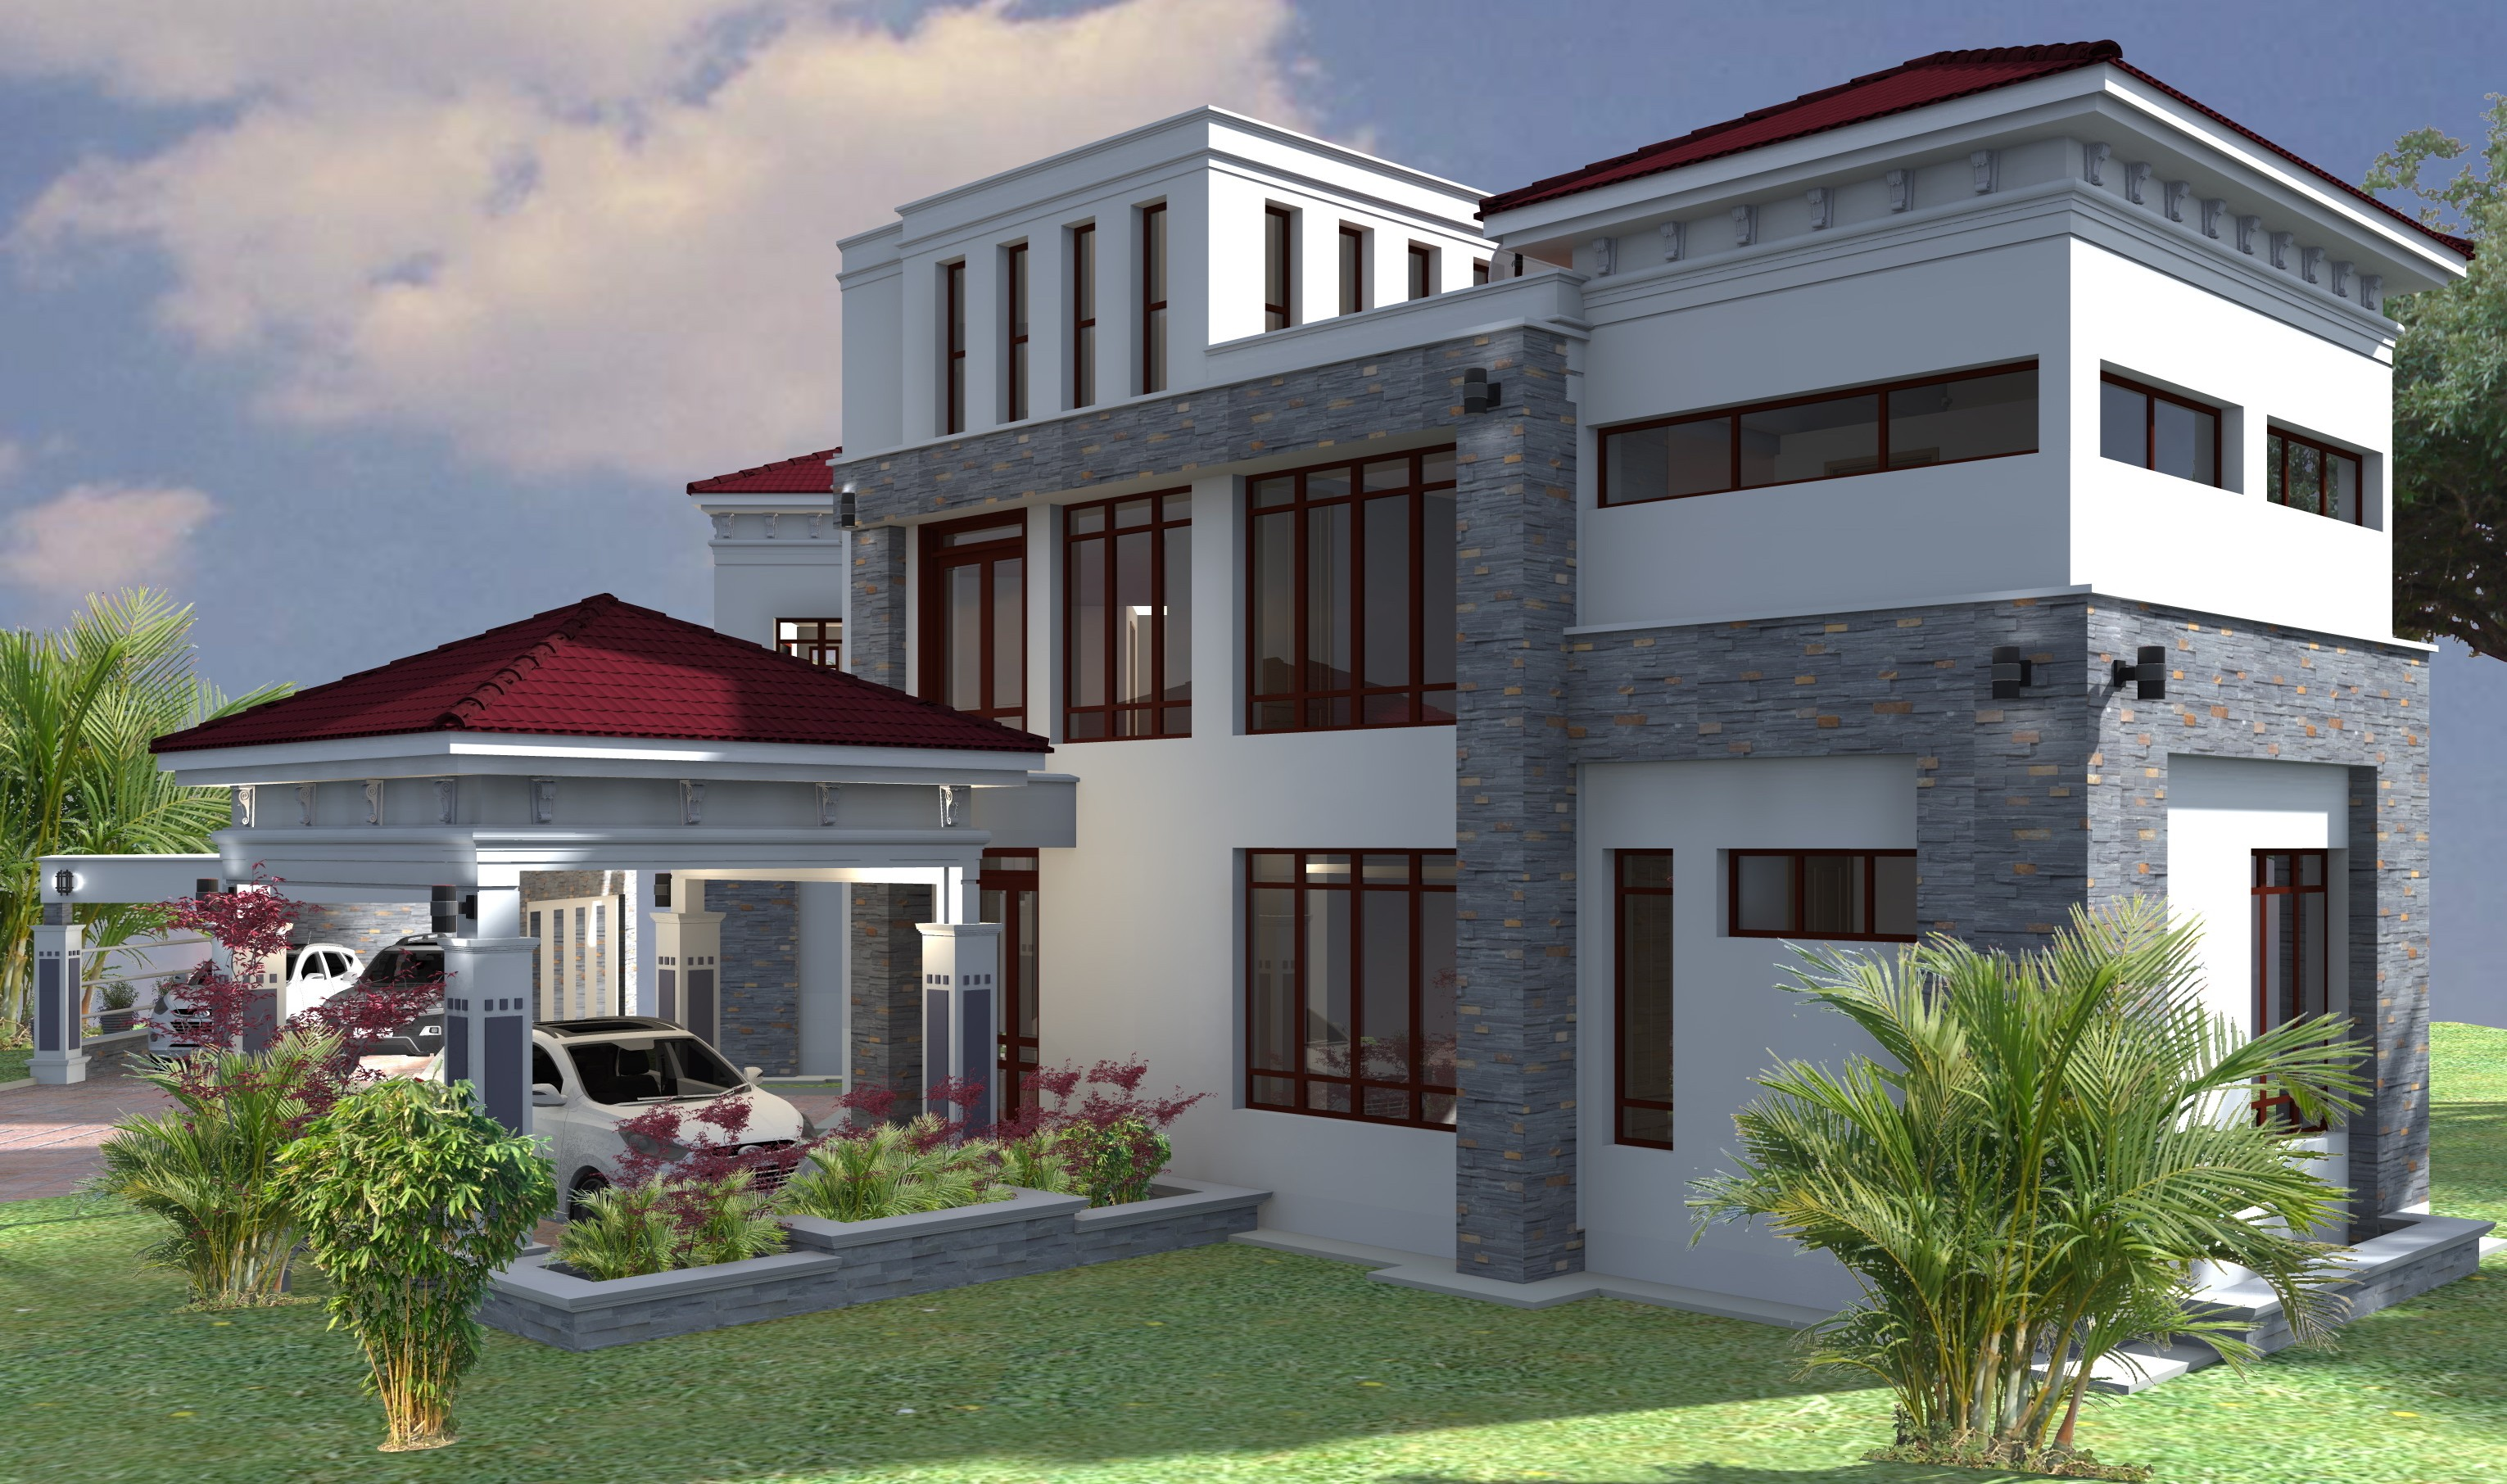 PROPOSED RESIDENTIAL HOUSE IN JEBEL SOUTH SUDAN